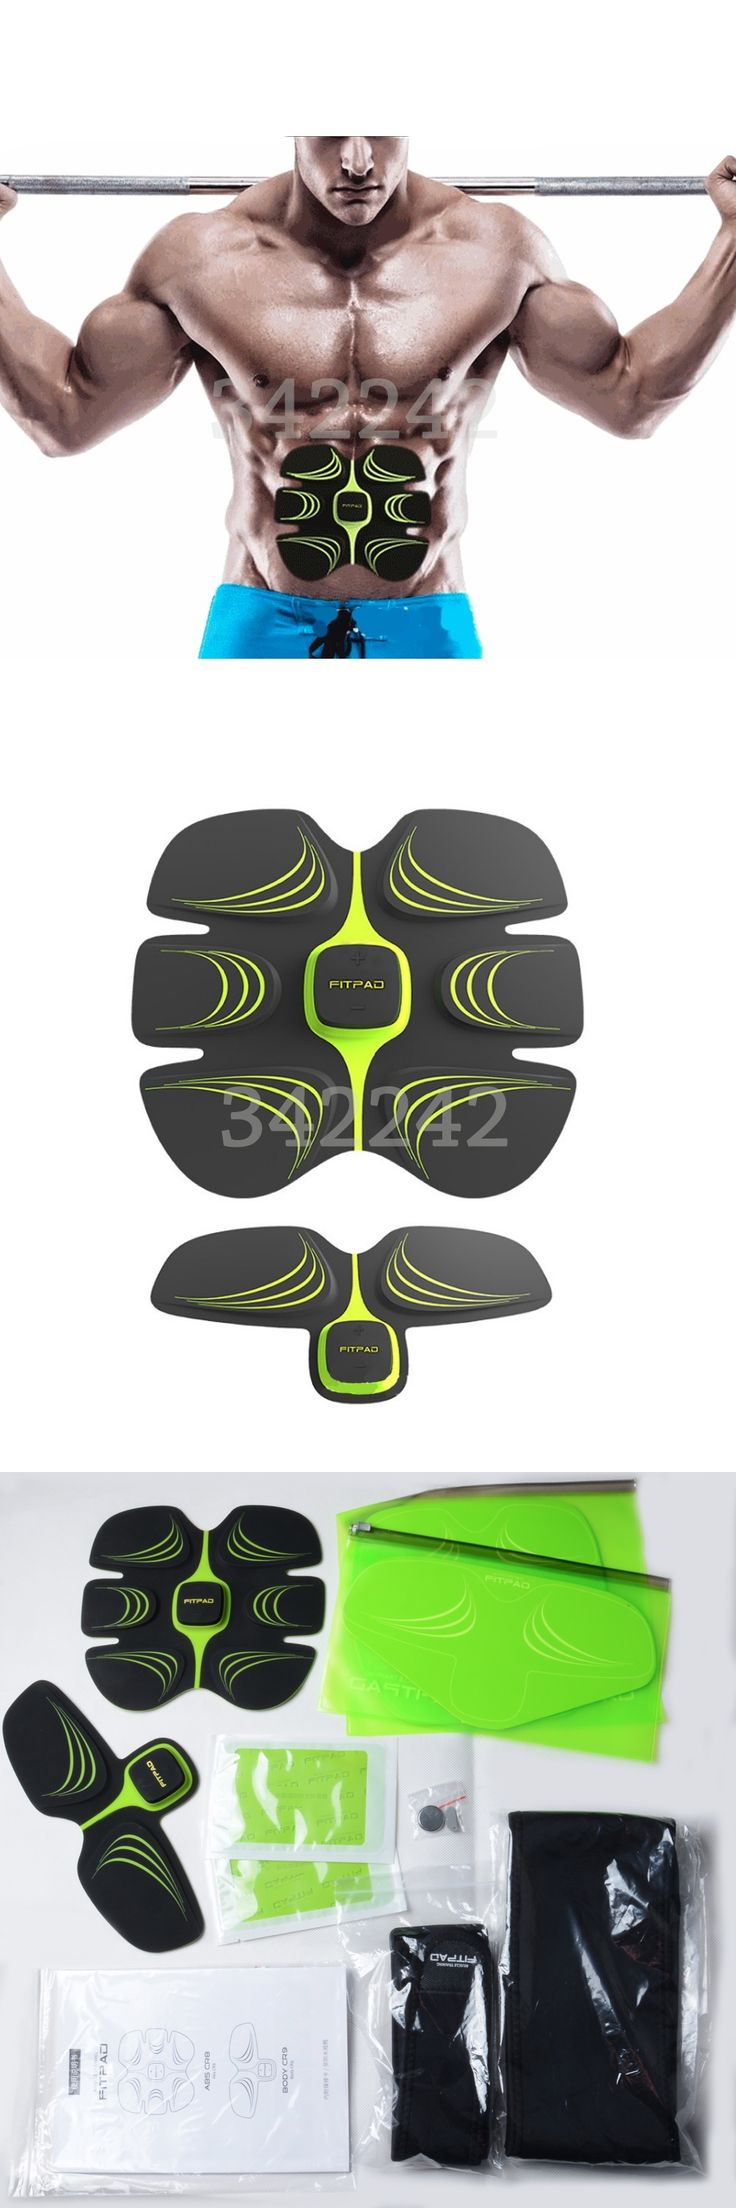 Fitpad ABS Training Multi-Function EMS abdominal sport exercise Hous abdominal muscles intensive training Loss Slimming Massager